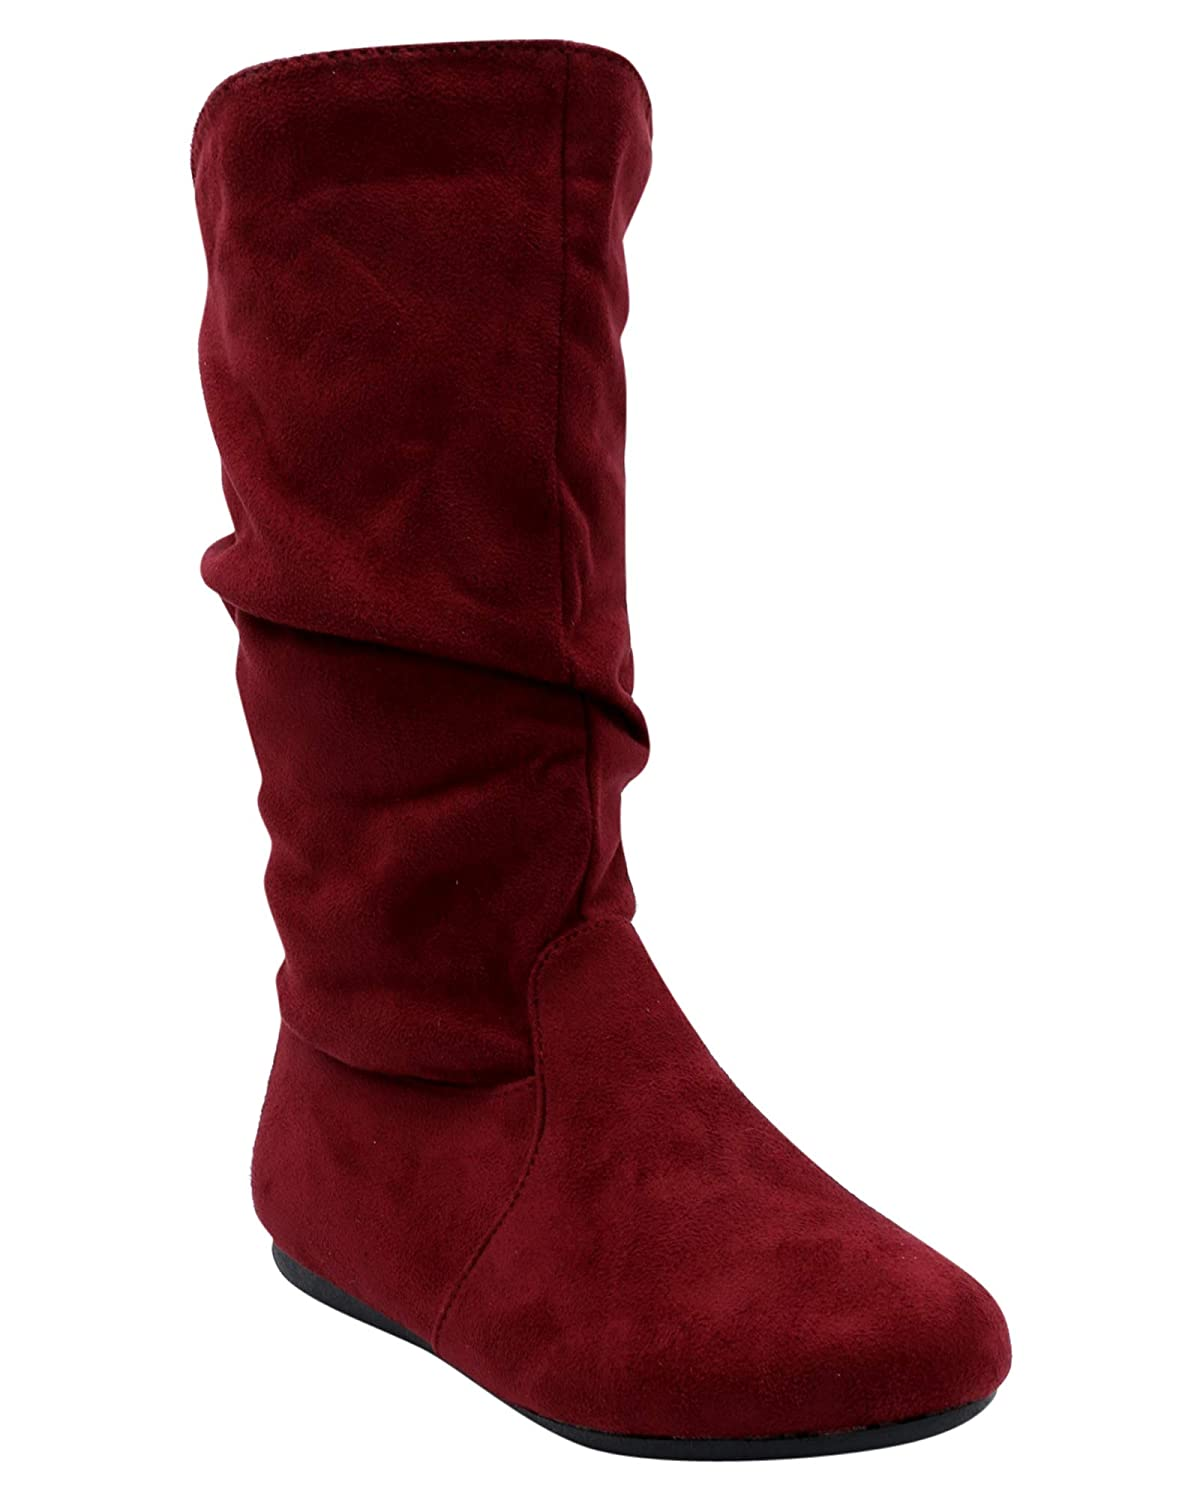 Link Girls Slouch Suede Boots Burgundy,12